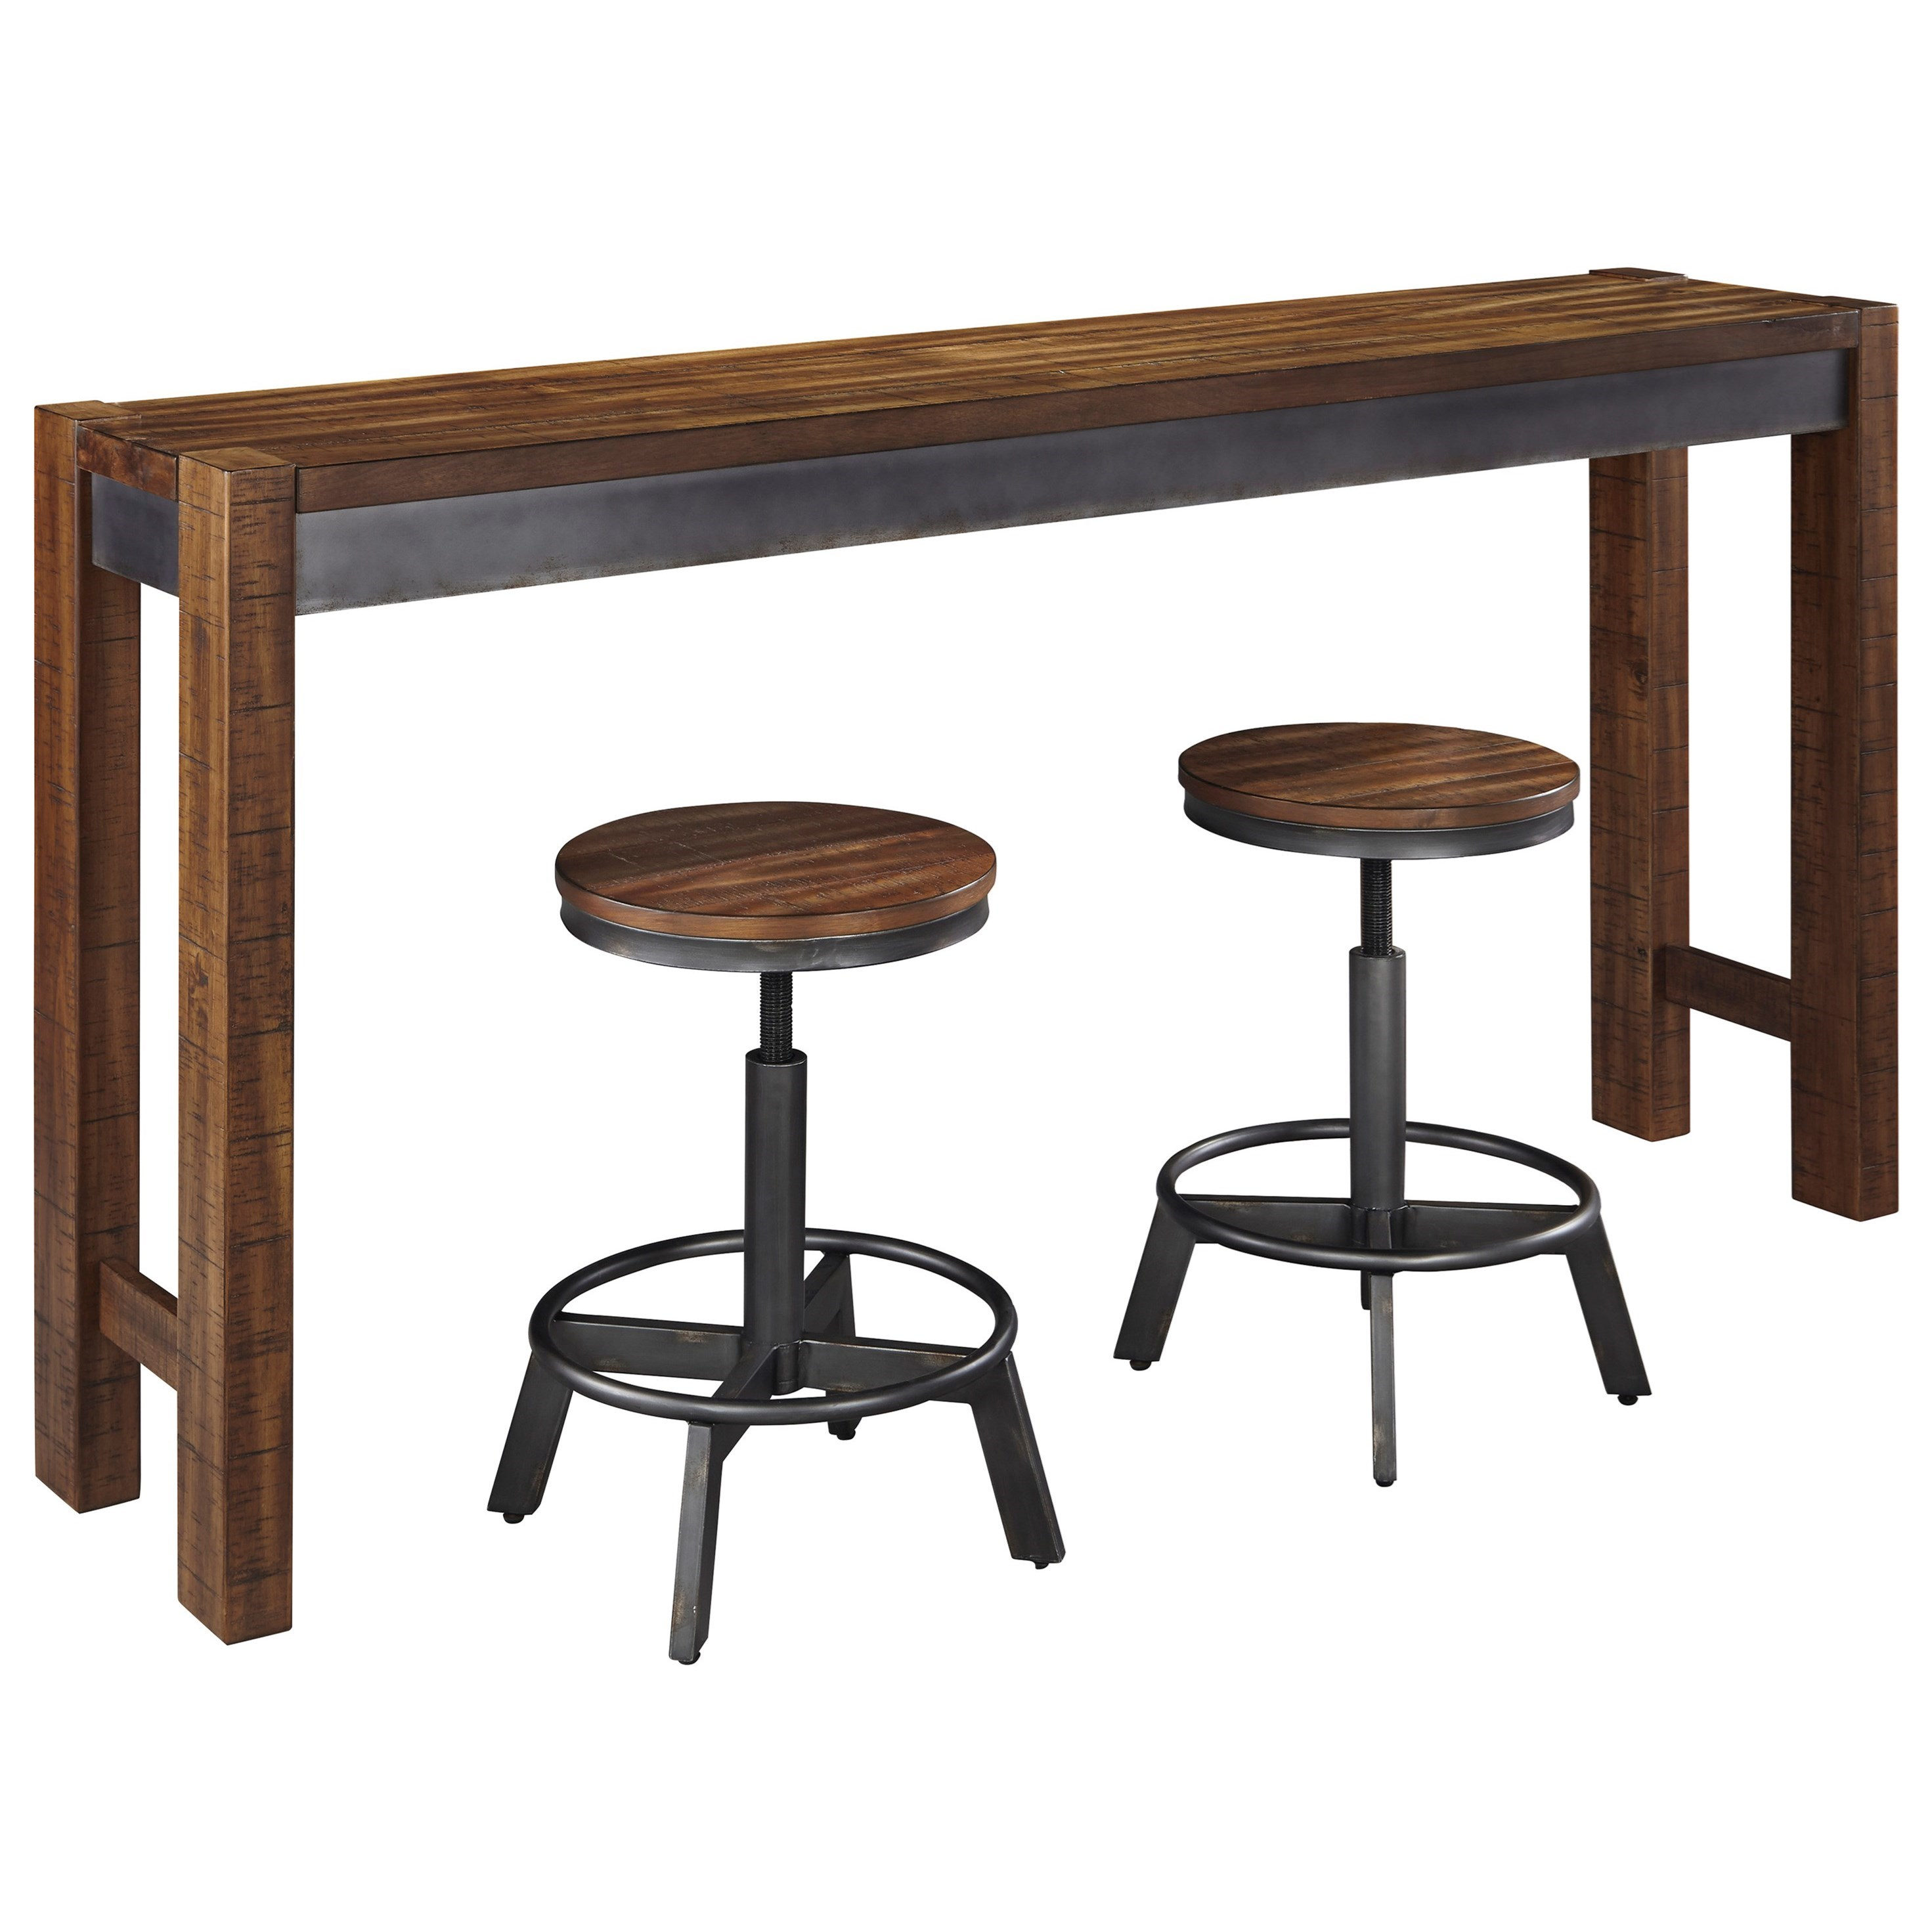 Signature design by ashley torjin 3 piece rustic long for Table behind couch with stools